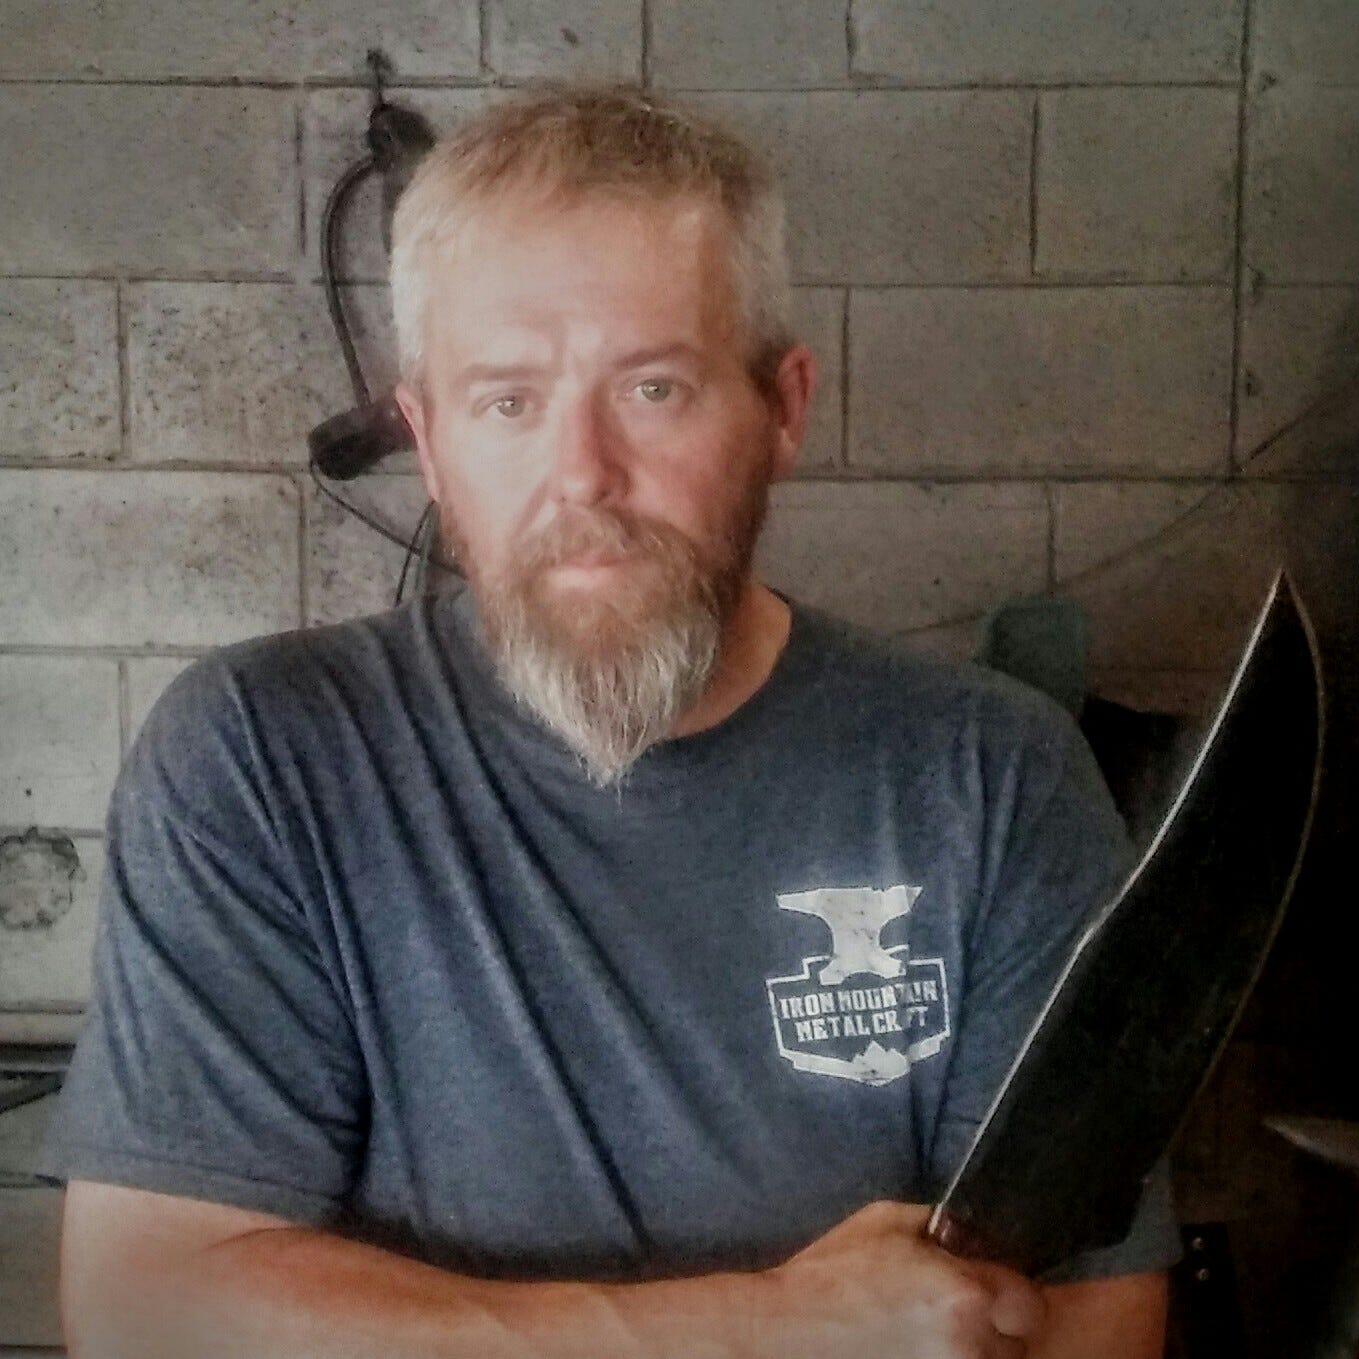 Pigeon Forge bladesmith suffers medical issue on History Channel's 'Knife or Death'